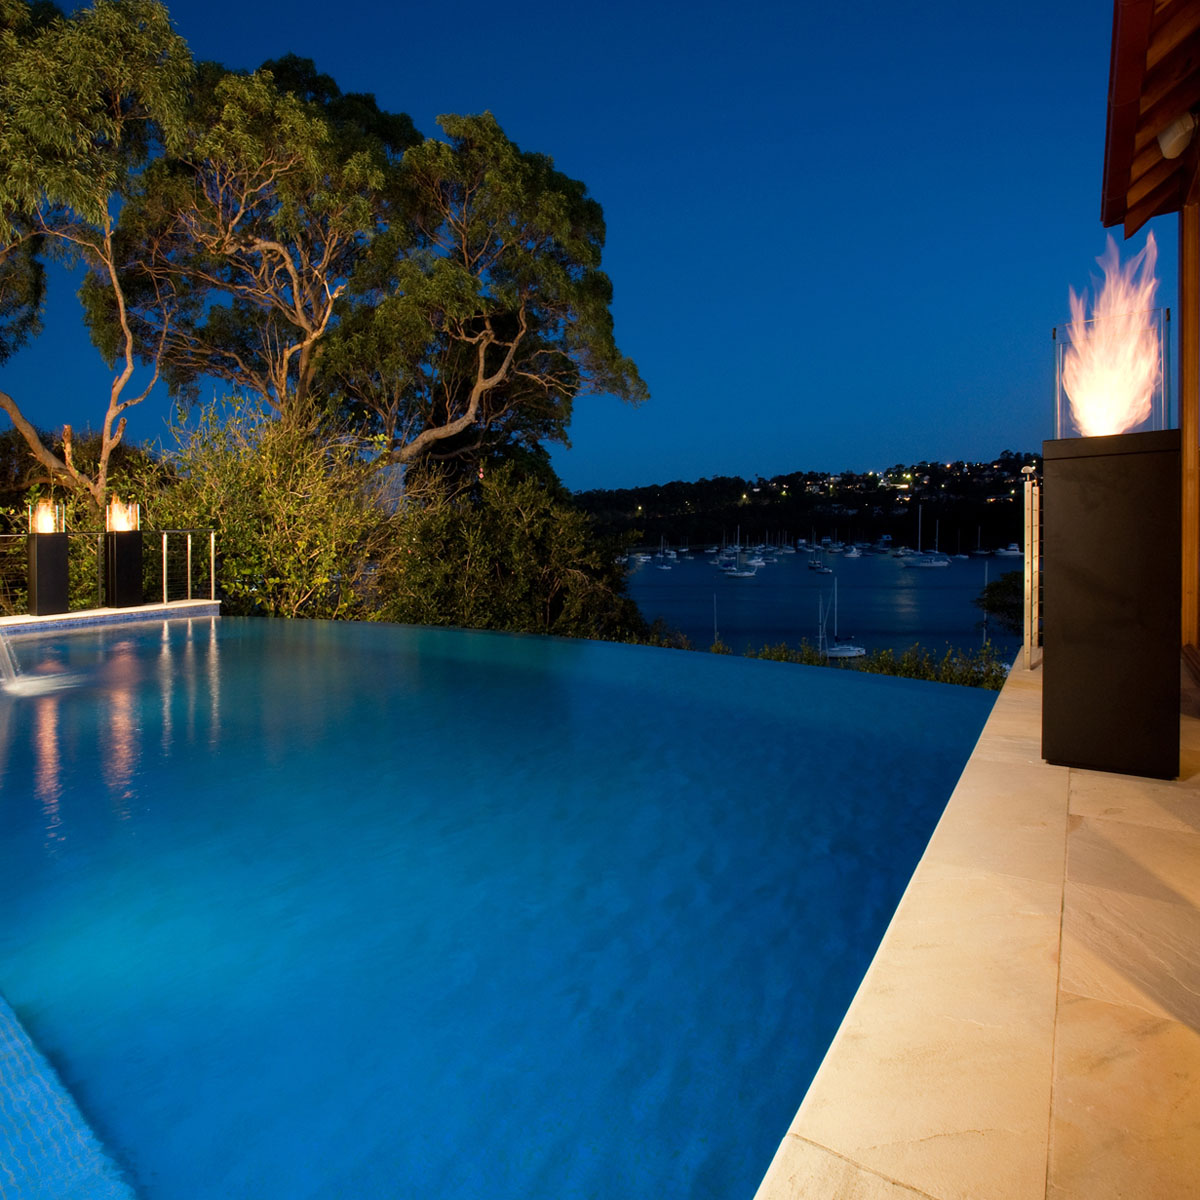 Chemical Free Pool and Spa systems